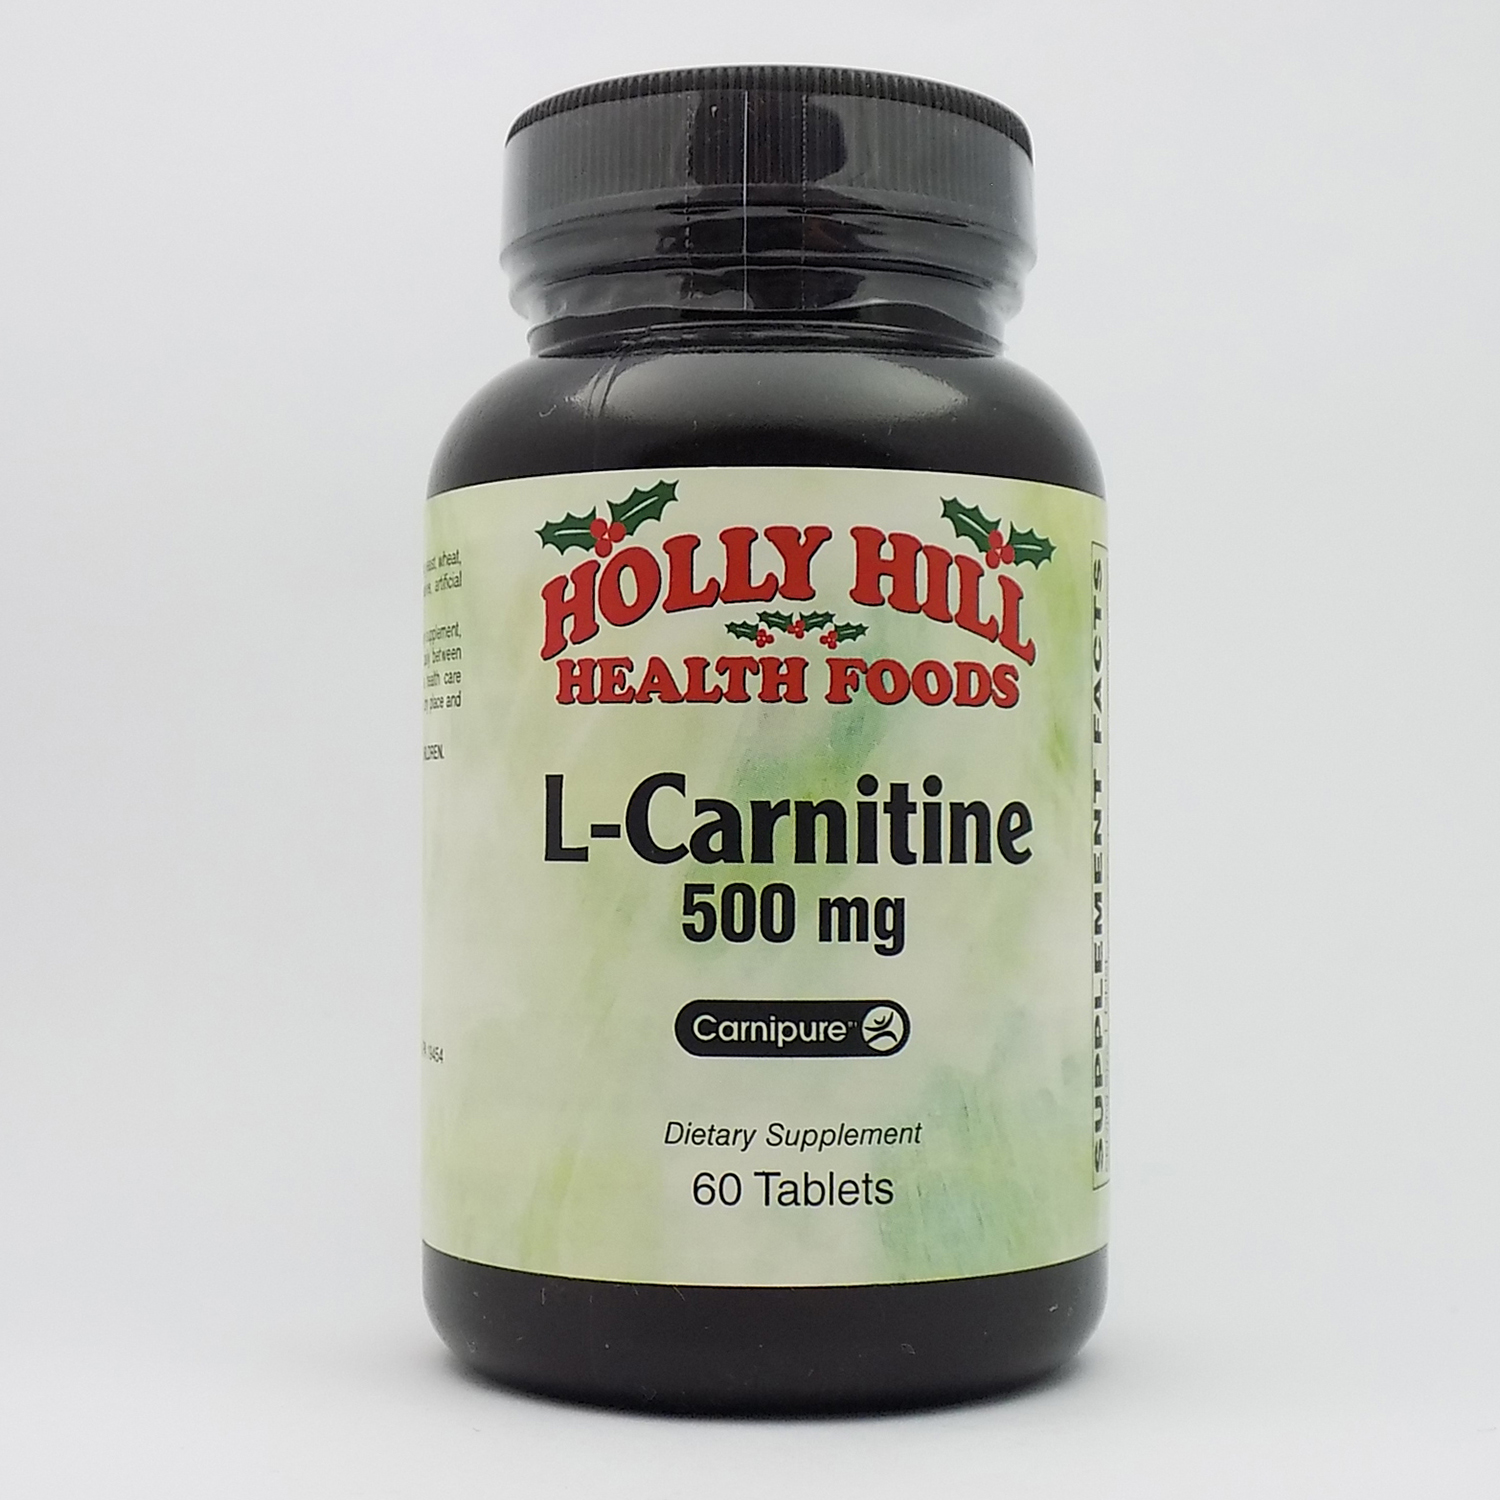 Holly Hill Health Foods, L-Carnitine 500 MG, 60 Tablets